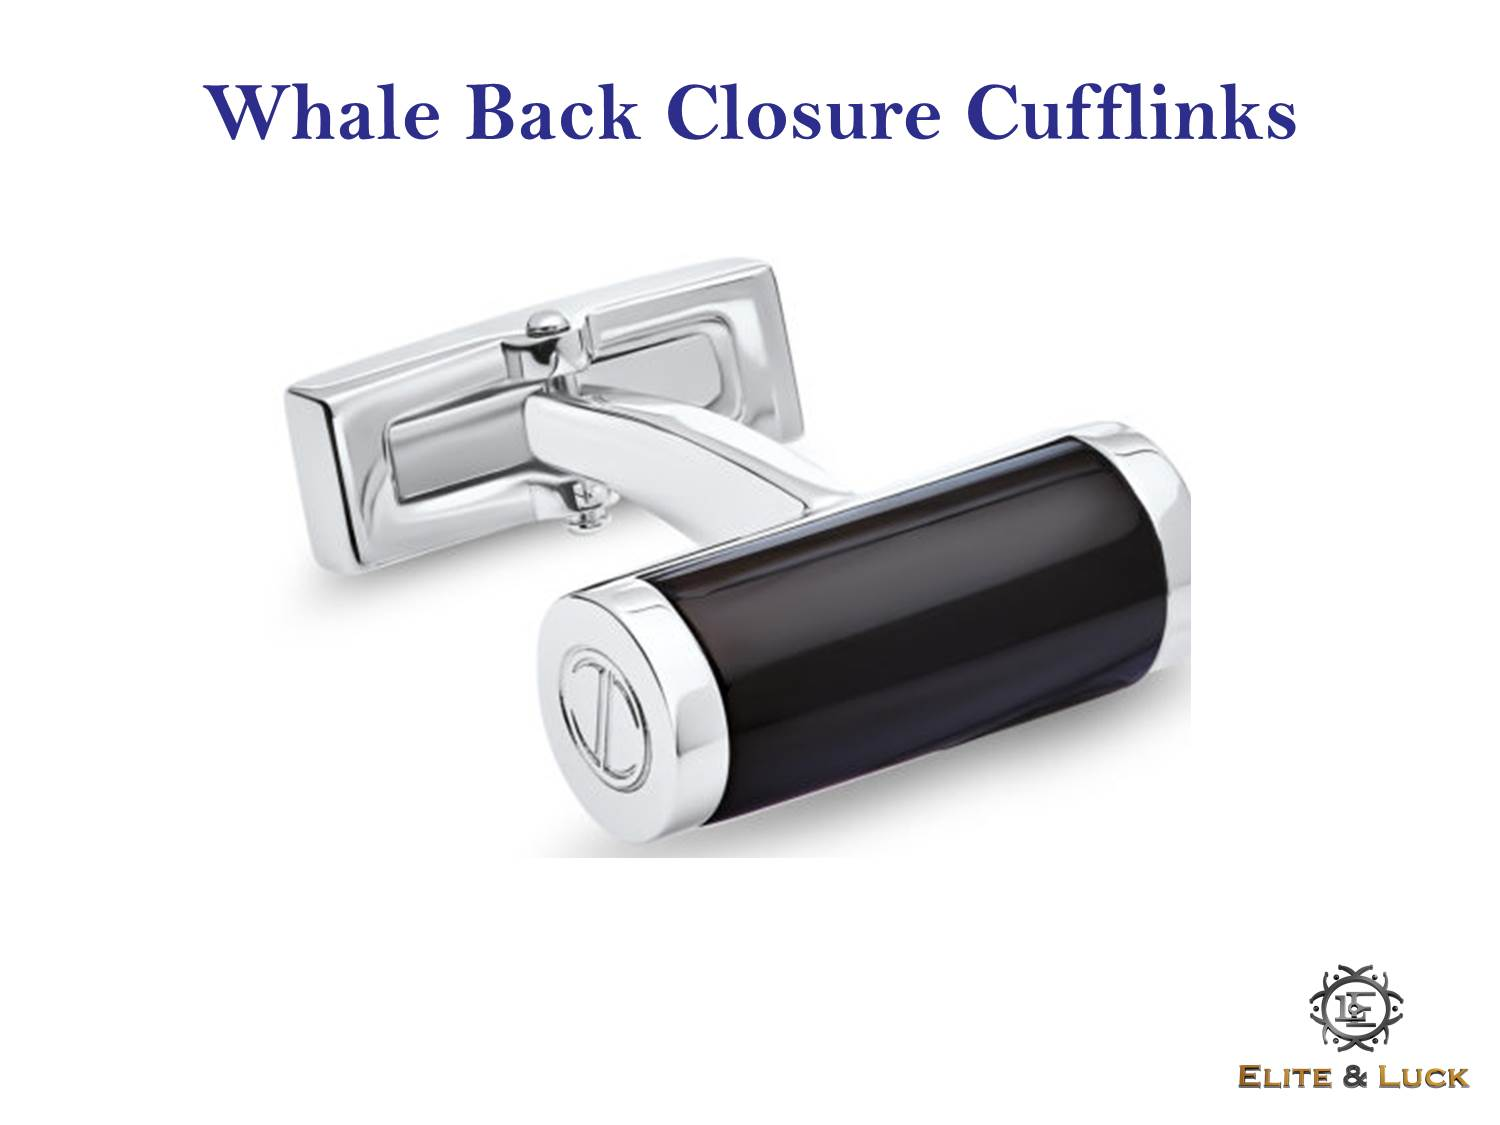 Whale Back Closure Cufflinks